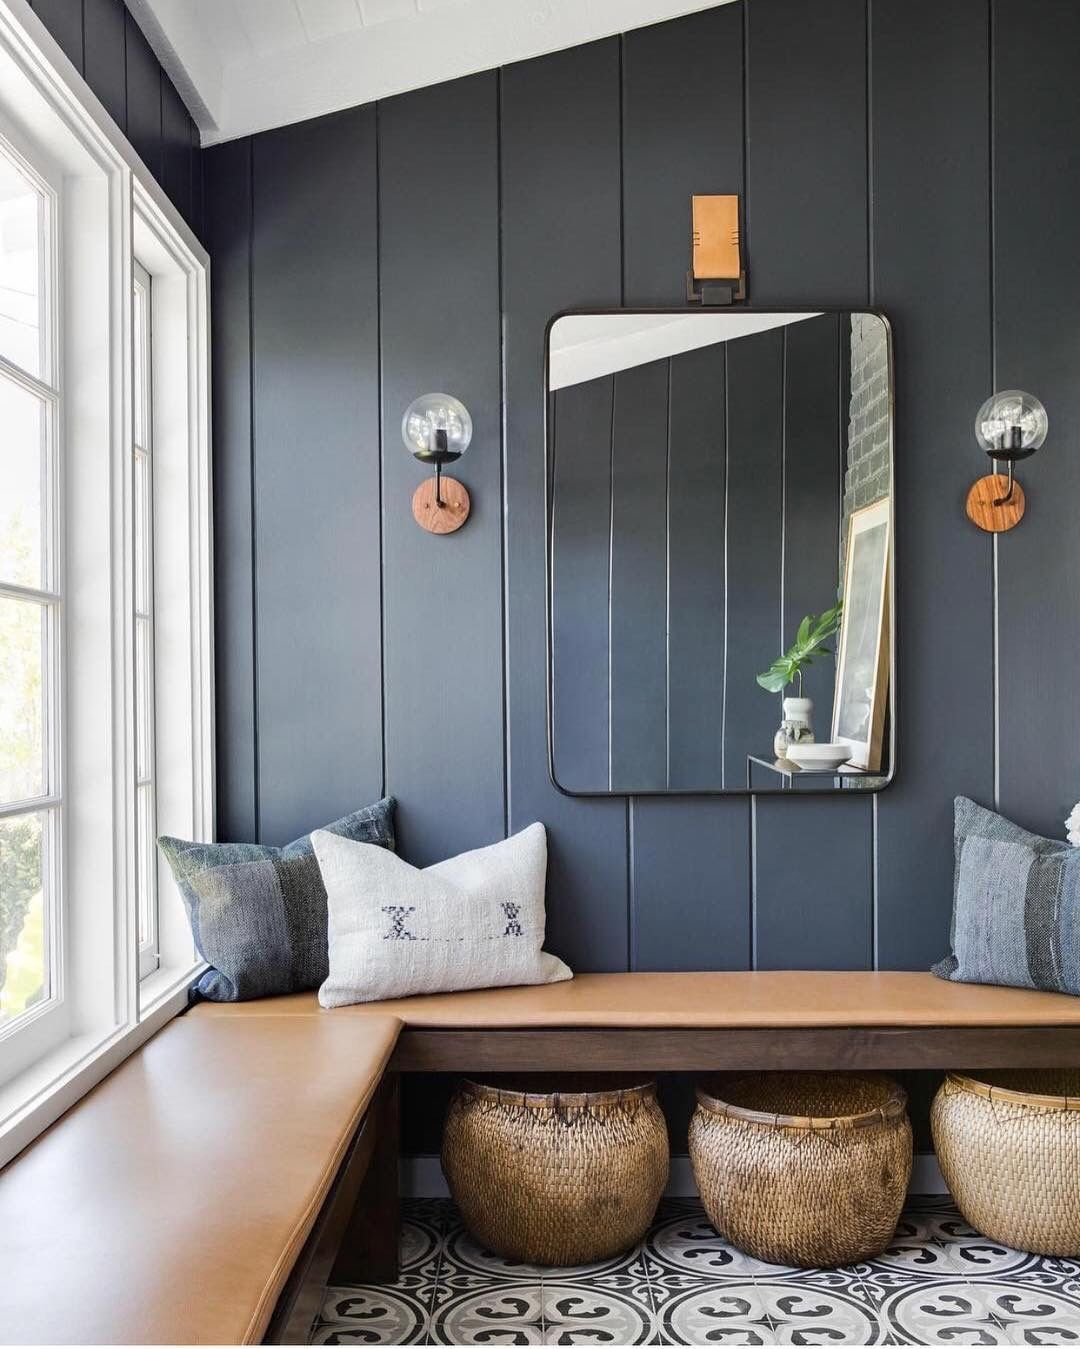 Vertical Wide Shiplap Planks To Trick Your Eyes Into Elongating